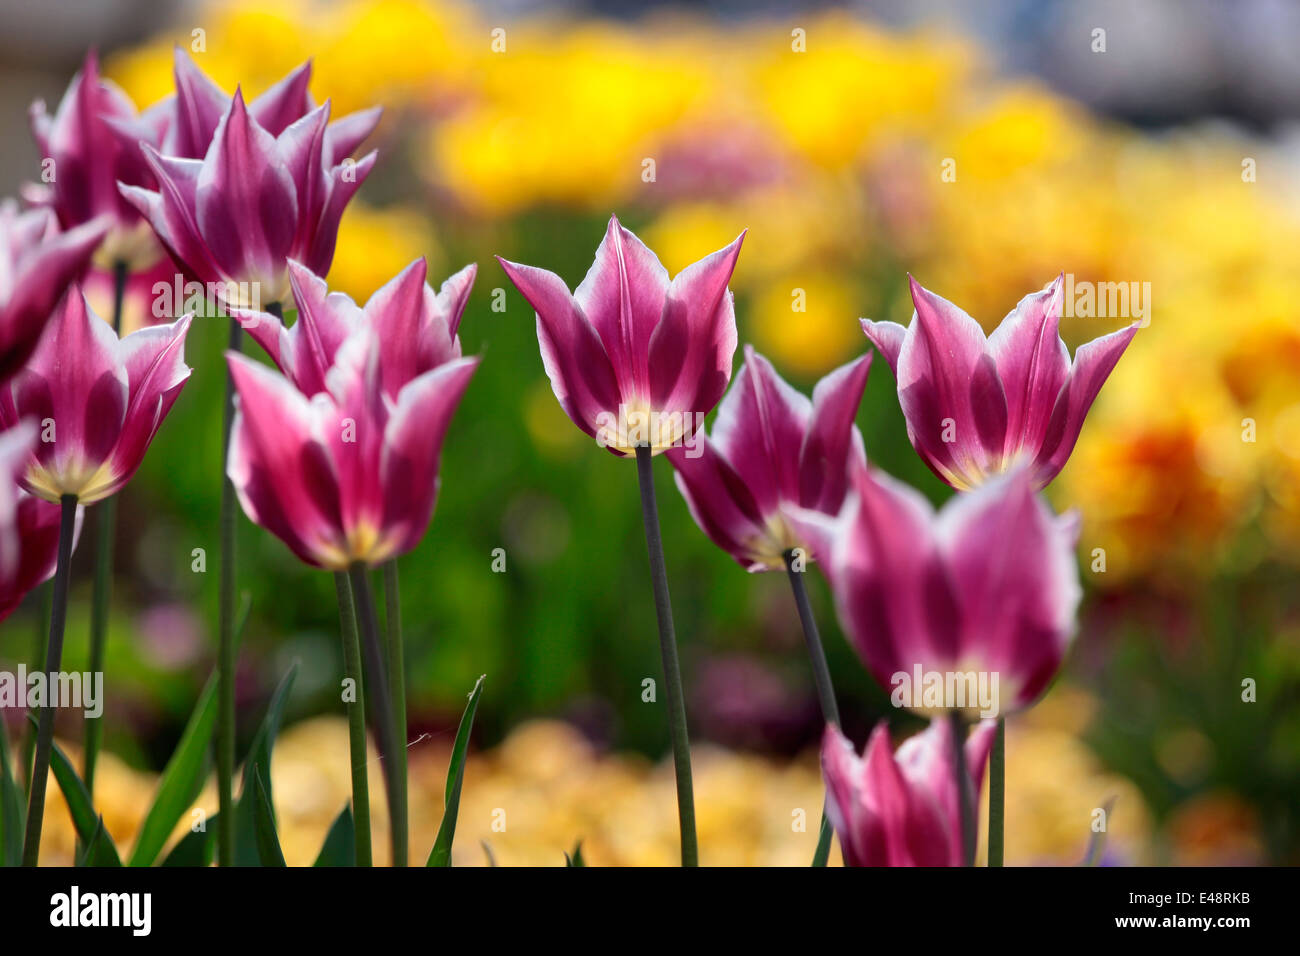 Tulips in the park of Balatonfüred Balaton, Hungary - Stock Image